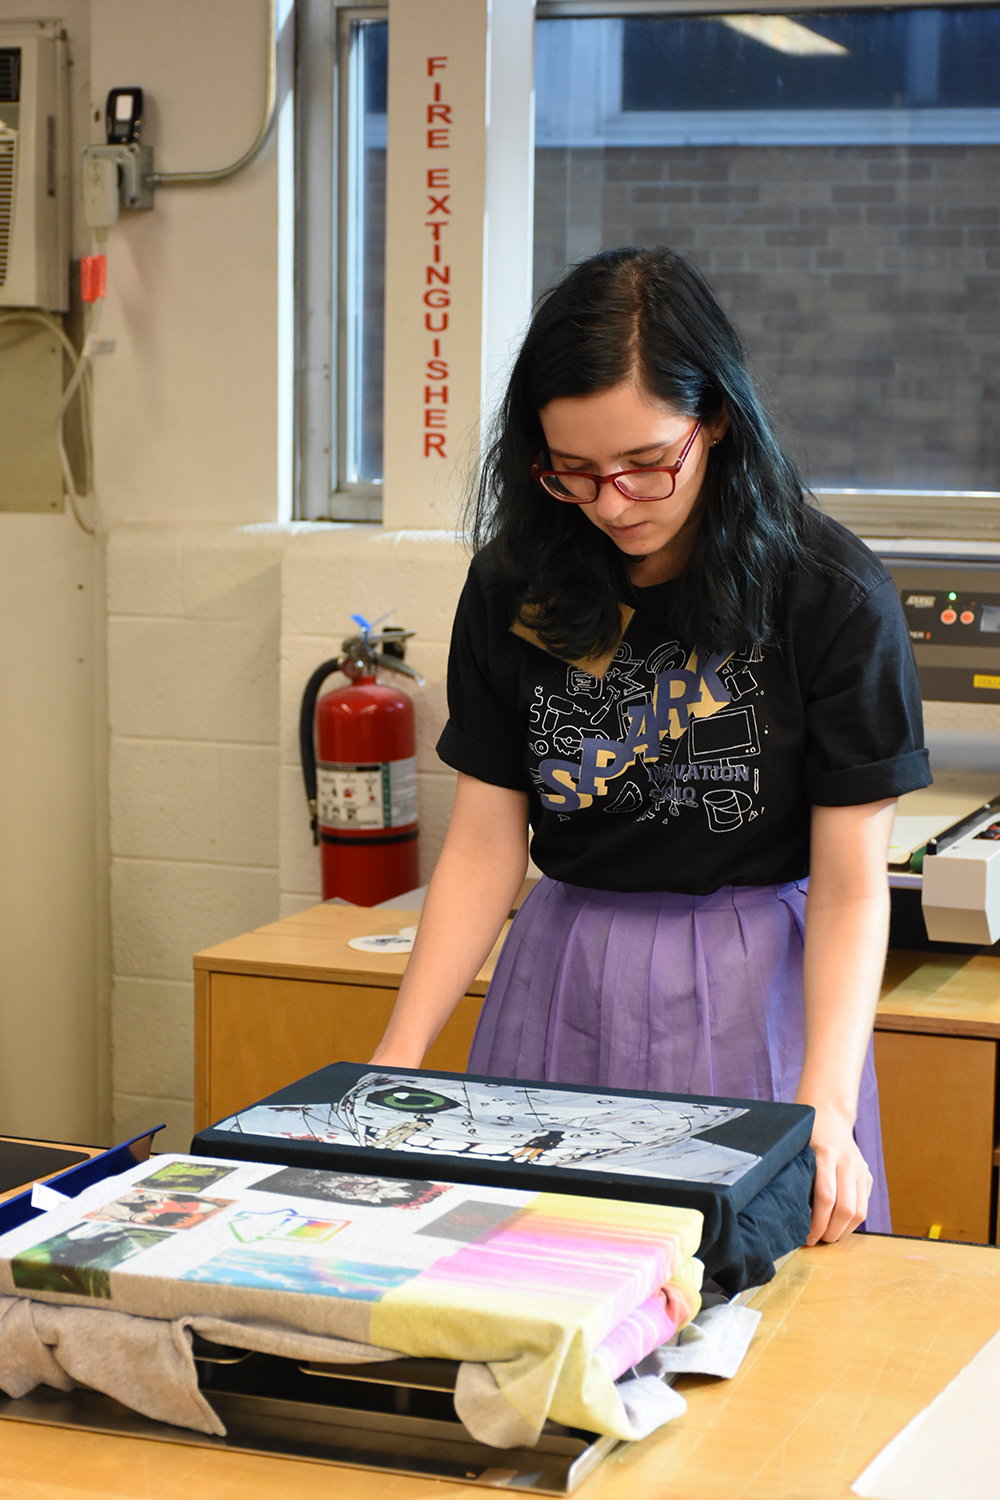 A Spark student employee demonstrates the garment printer